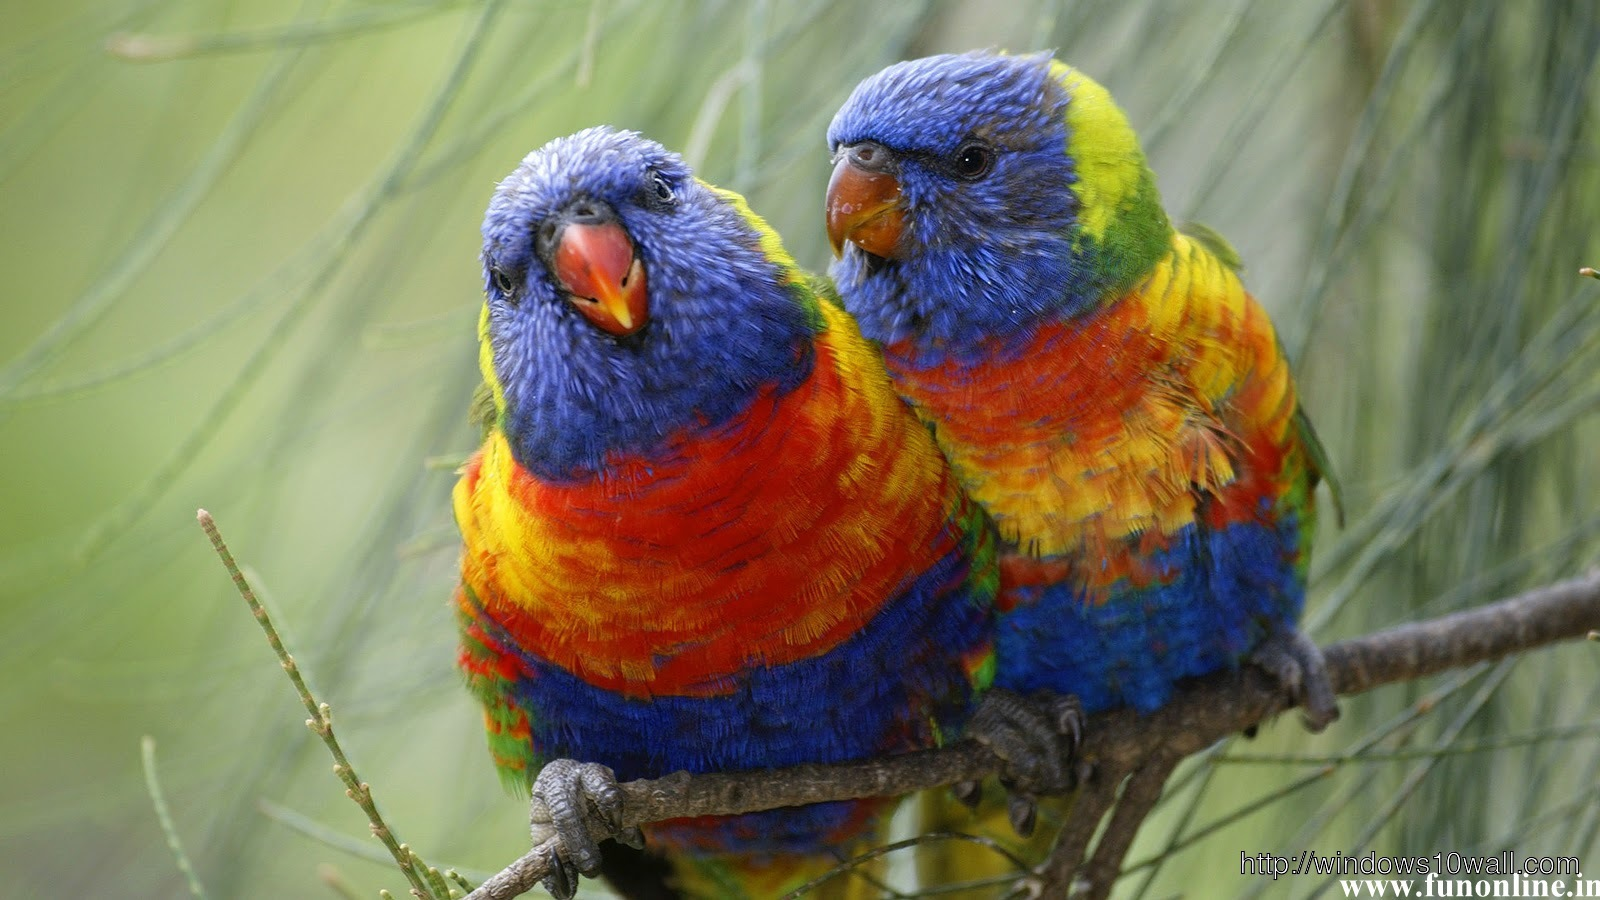 Colorful Pair Of Parrot Hd Wallpaper Windows 10 Wallpapers